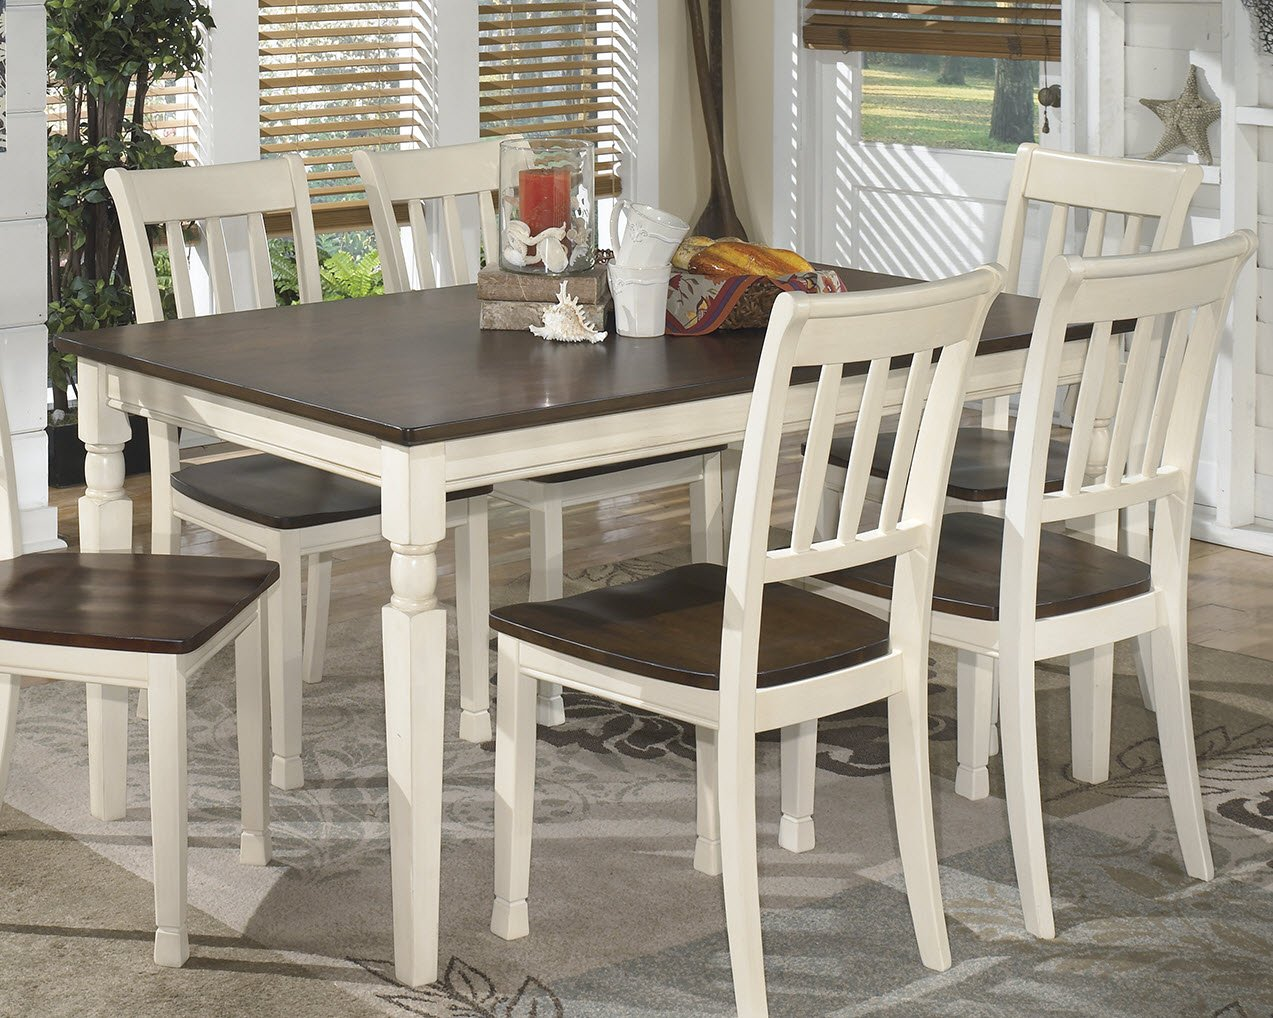 amazoncom ashley furniture signature design whitesburg dining room table rectangular vintage casual browncottage white tables - Farmhouse Kitchen Table